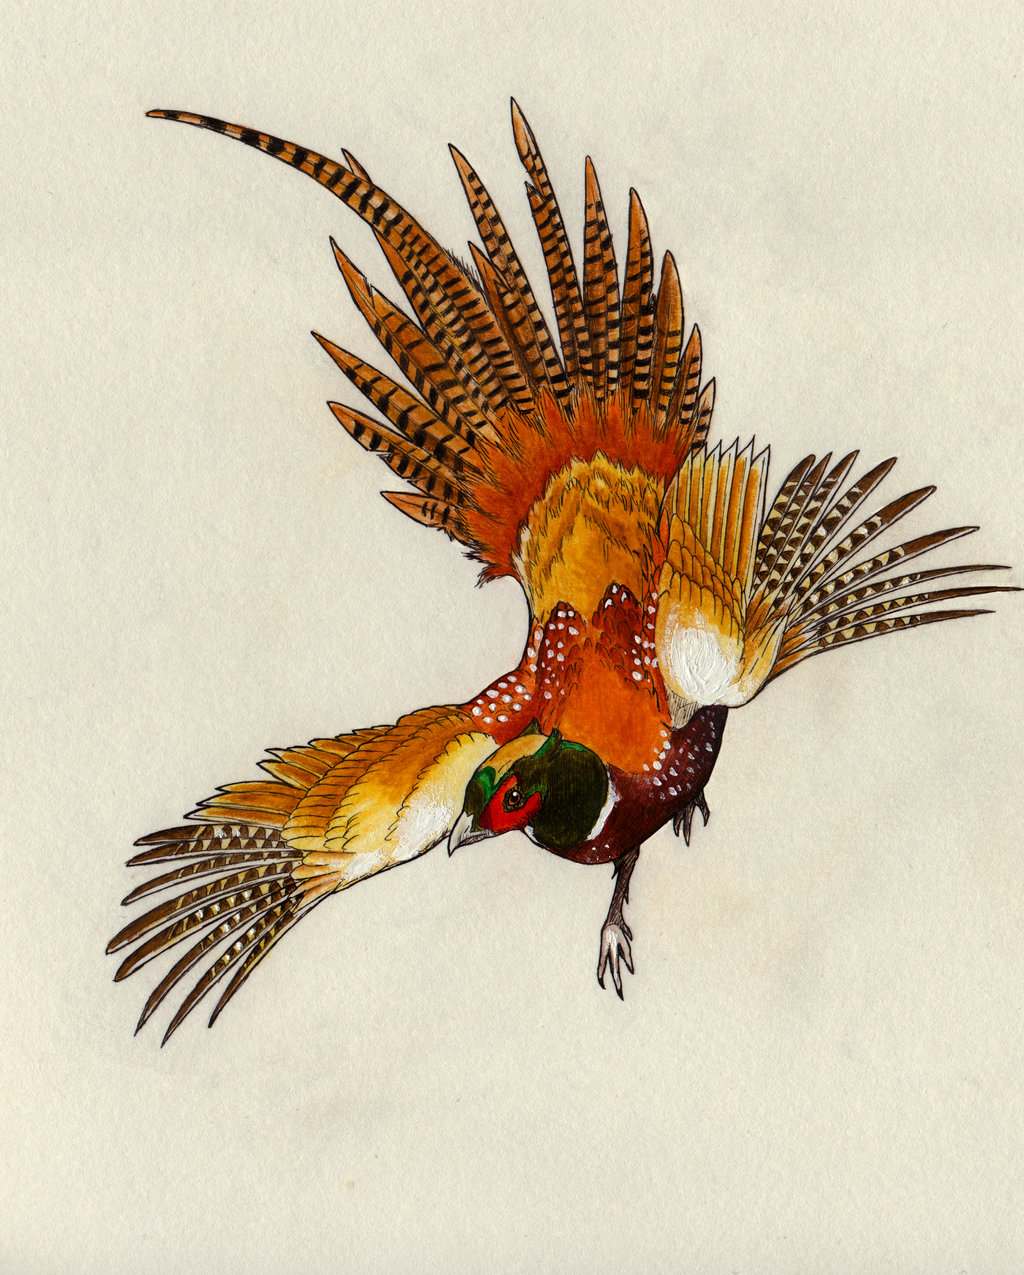 1024x1275 Of The Pheasant By Eurwentala